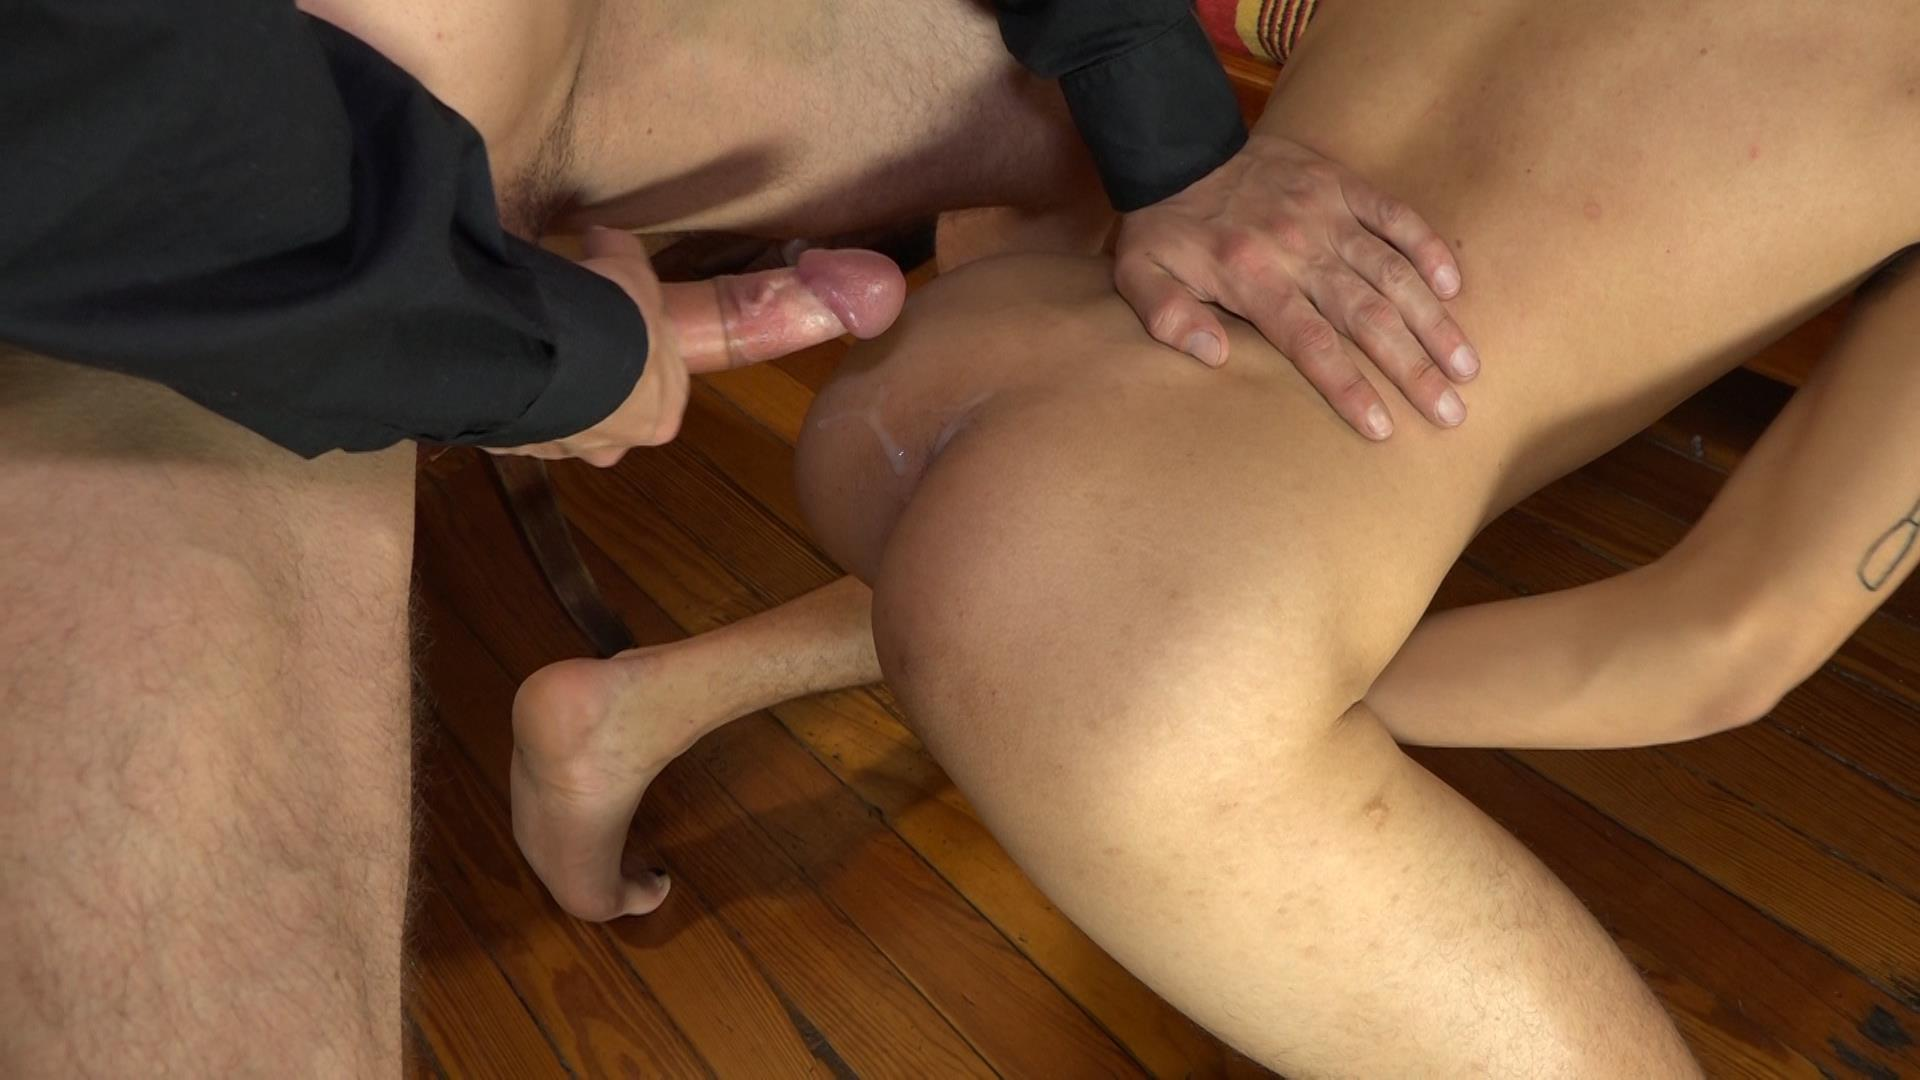 Bareback-Me-Daddy-Catholic-Priest-Fucks-A-College-Student-Bareback-Gay-Sex-23 Getting Bareback Fucked By An Older Catholic Priest!